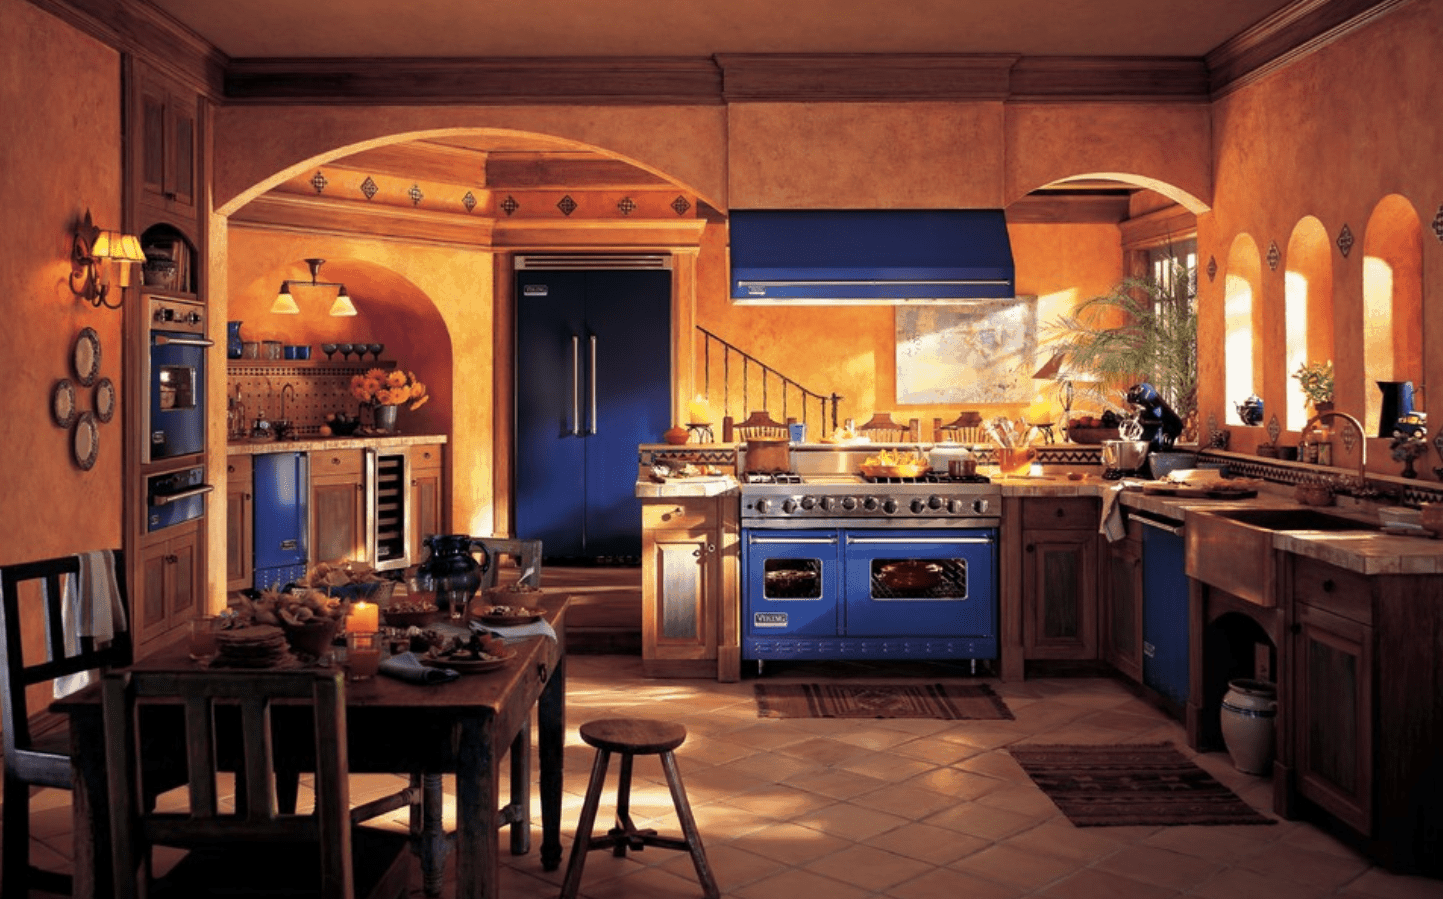 Southwestern kitchen accented with blue appliances and slate flooring. It includes wooden cabinetry and dining space.